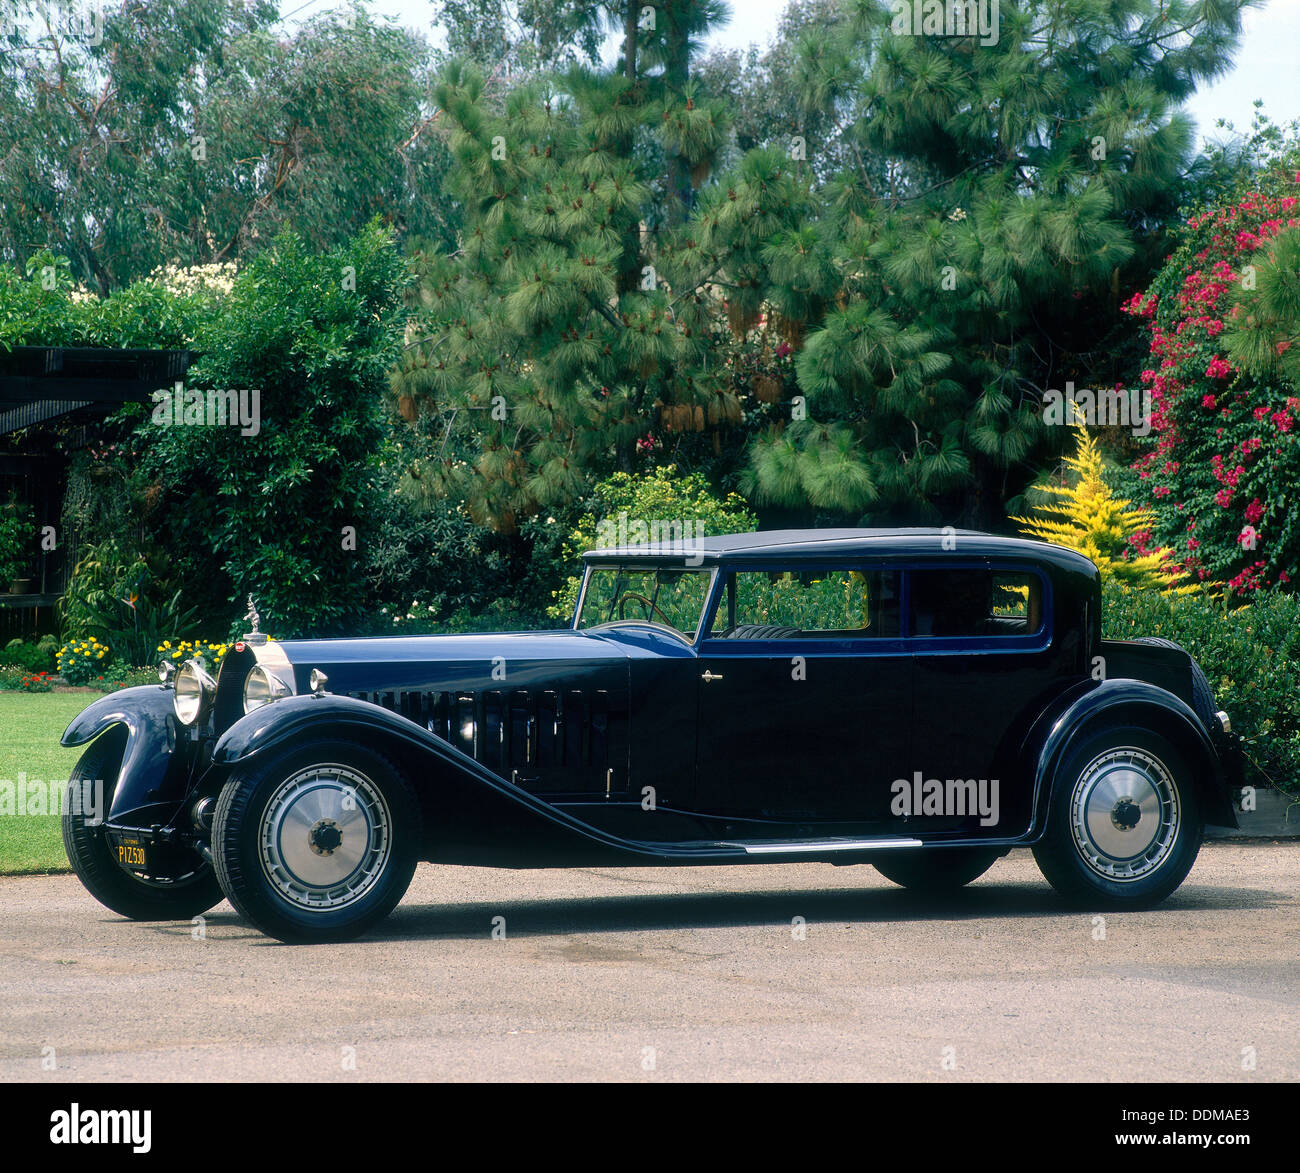 bugatti type 41 royale stock photos & bugatti type 41 royale stock